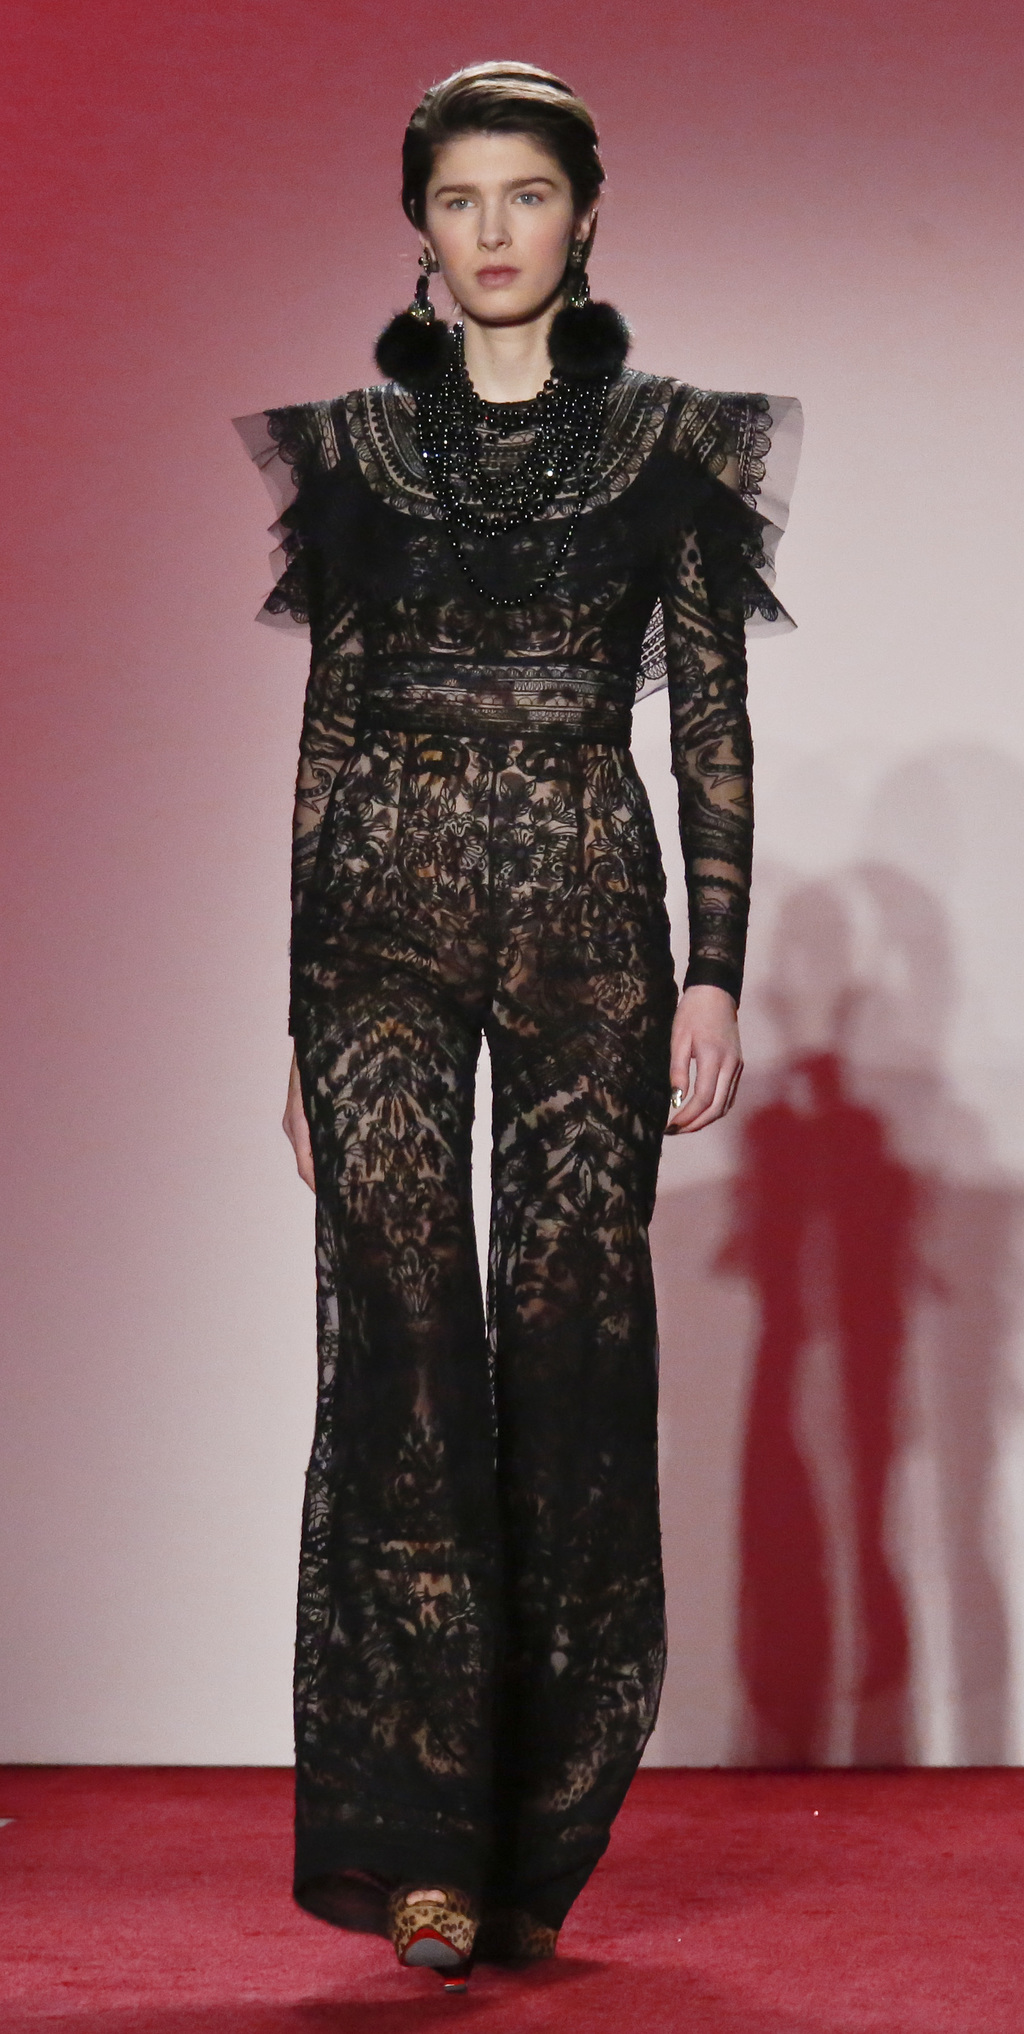 Fashion from the Naeem Khan collection is modeled during Fashion Week, Tuesday, Feb. 14, 2017, in New York. (AP Photo/Bebeto Matthews) ...